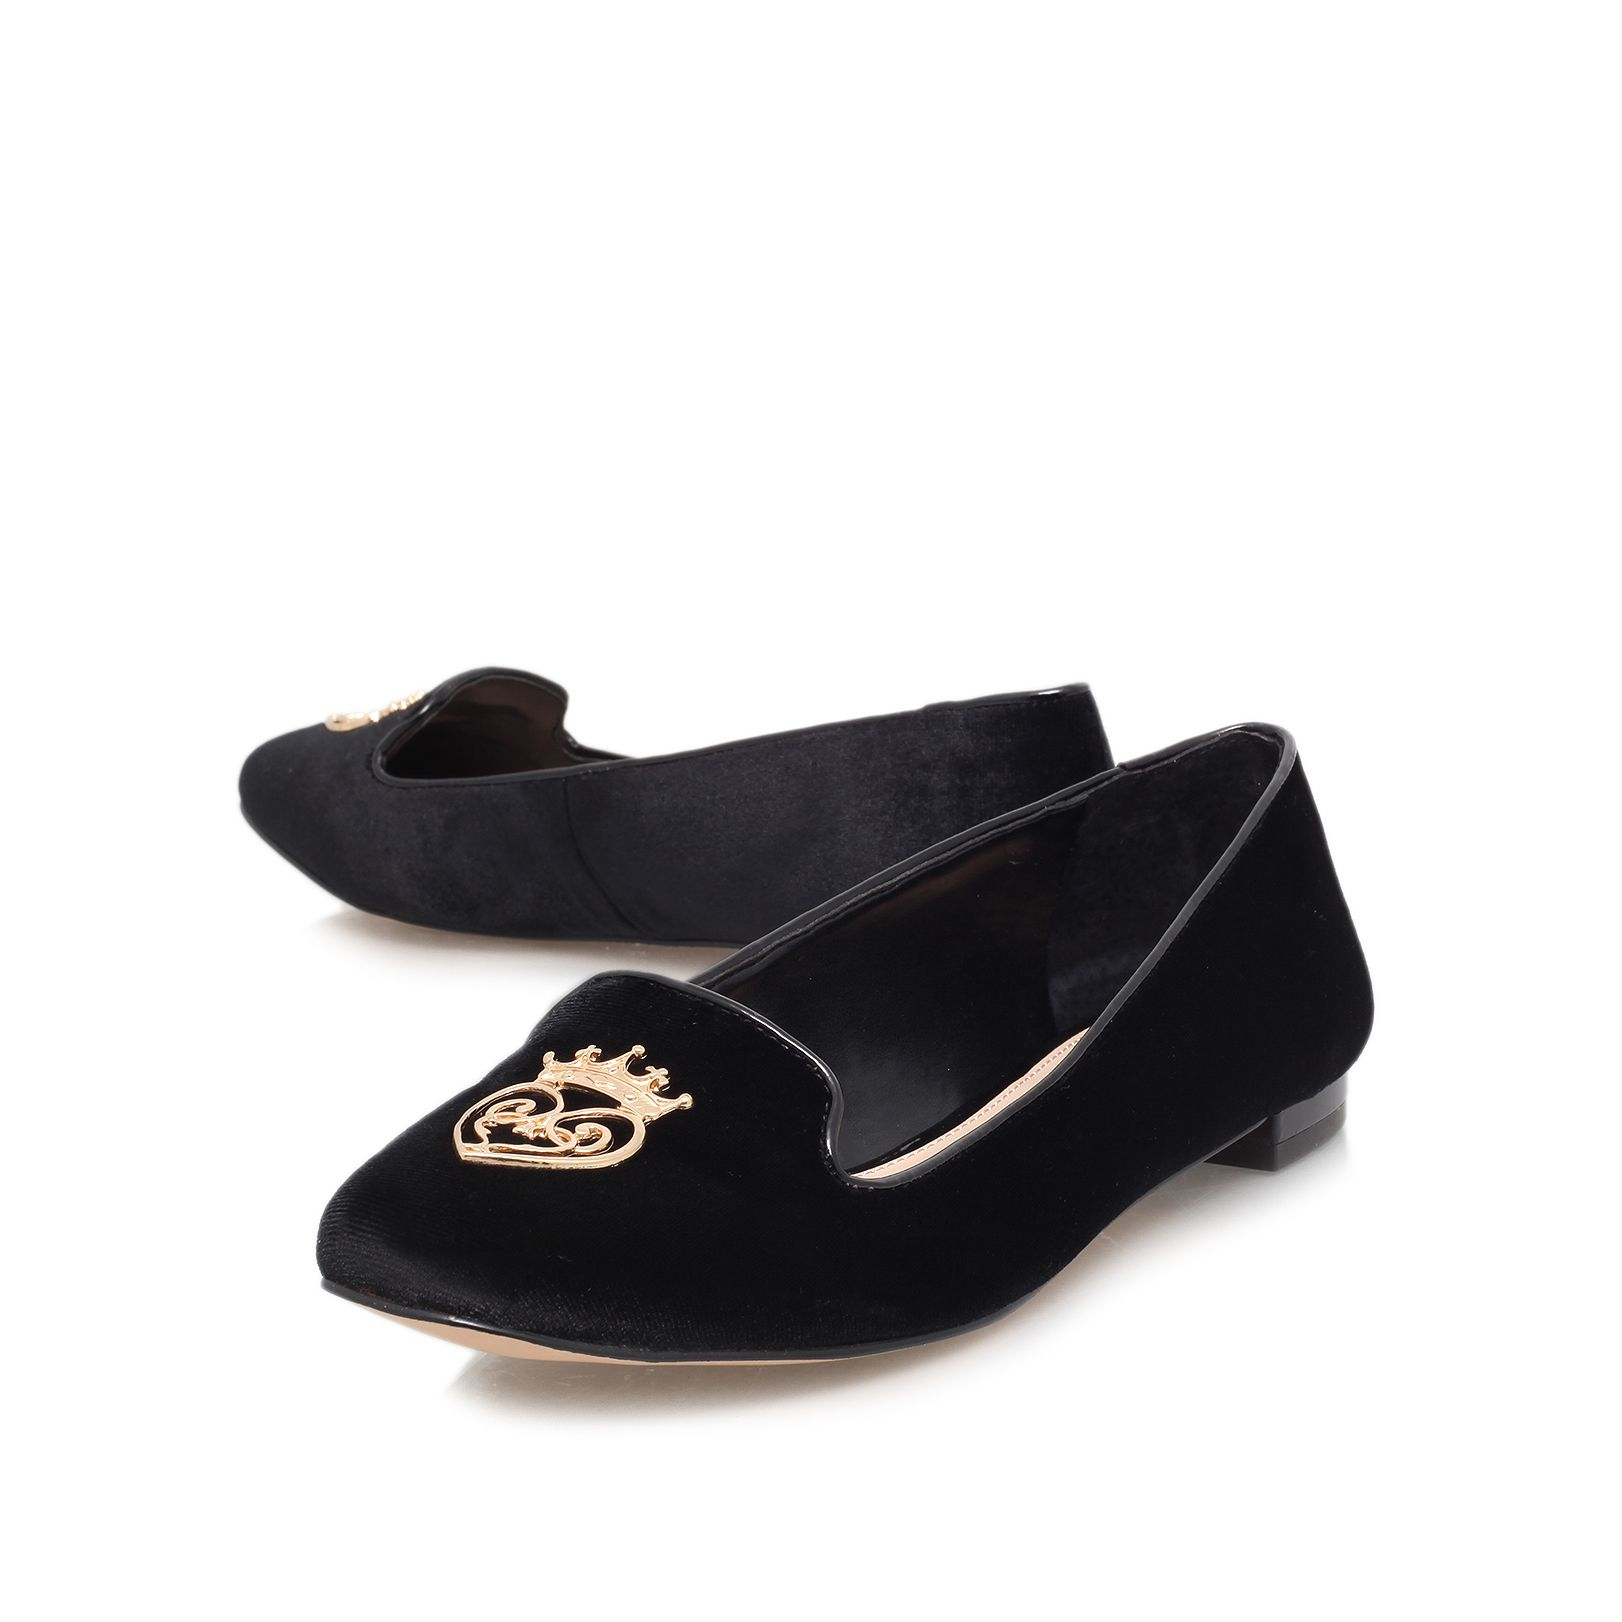 Liv flat loafers